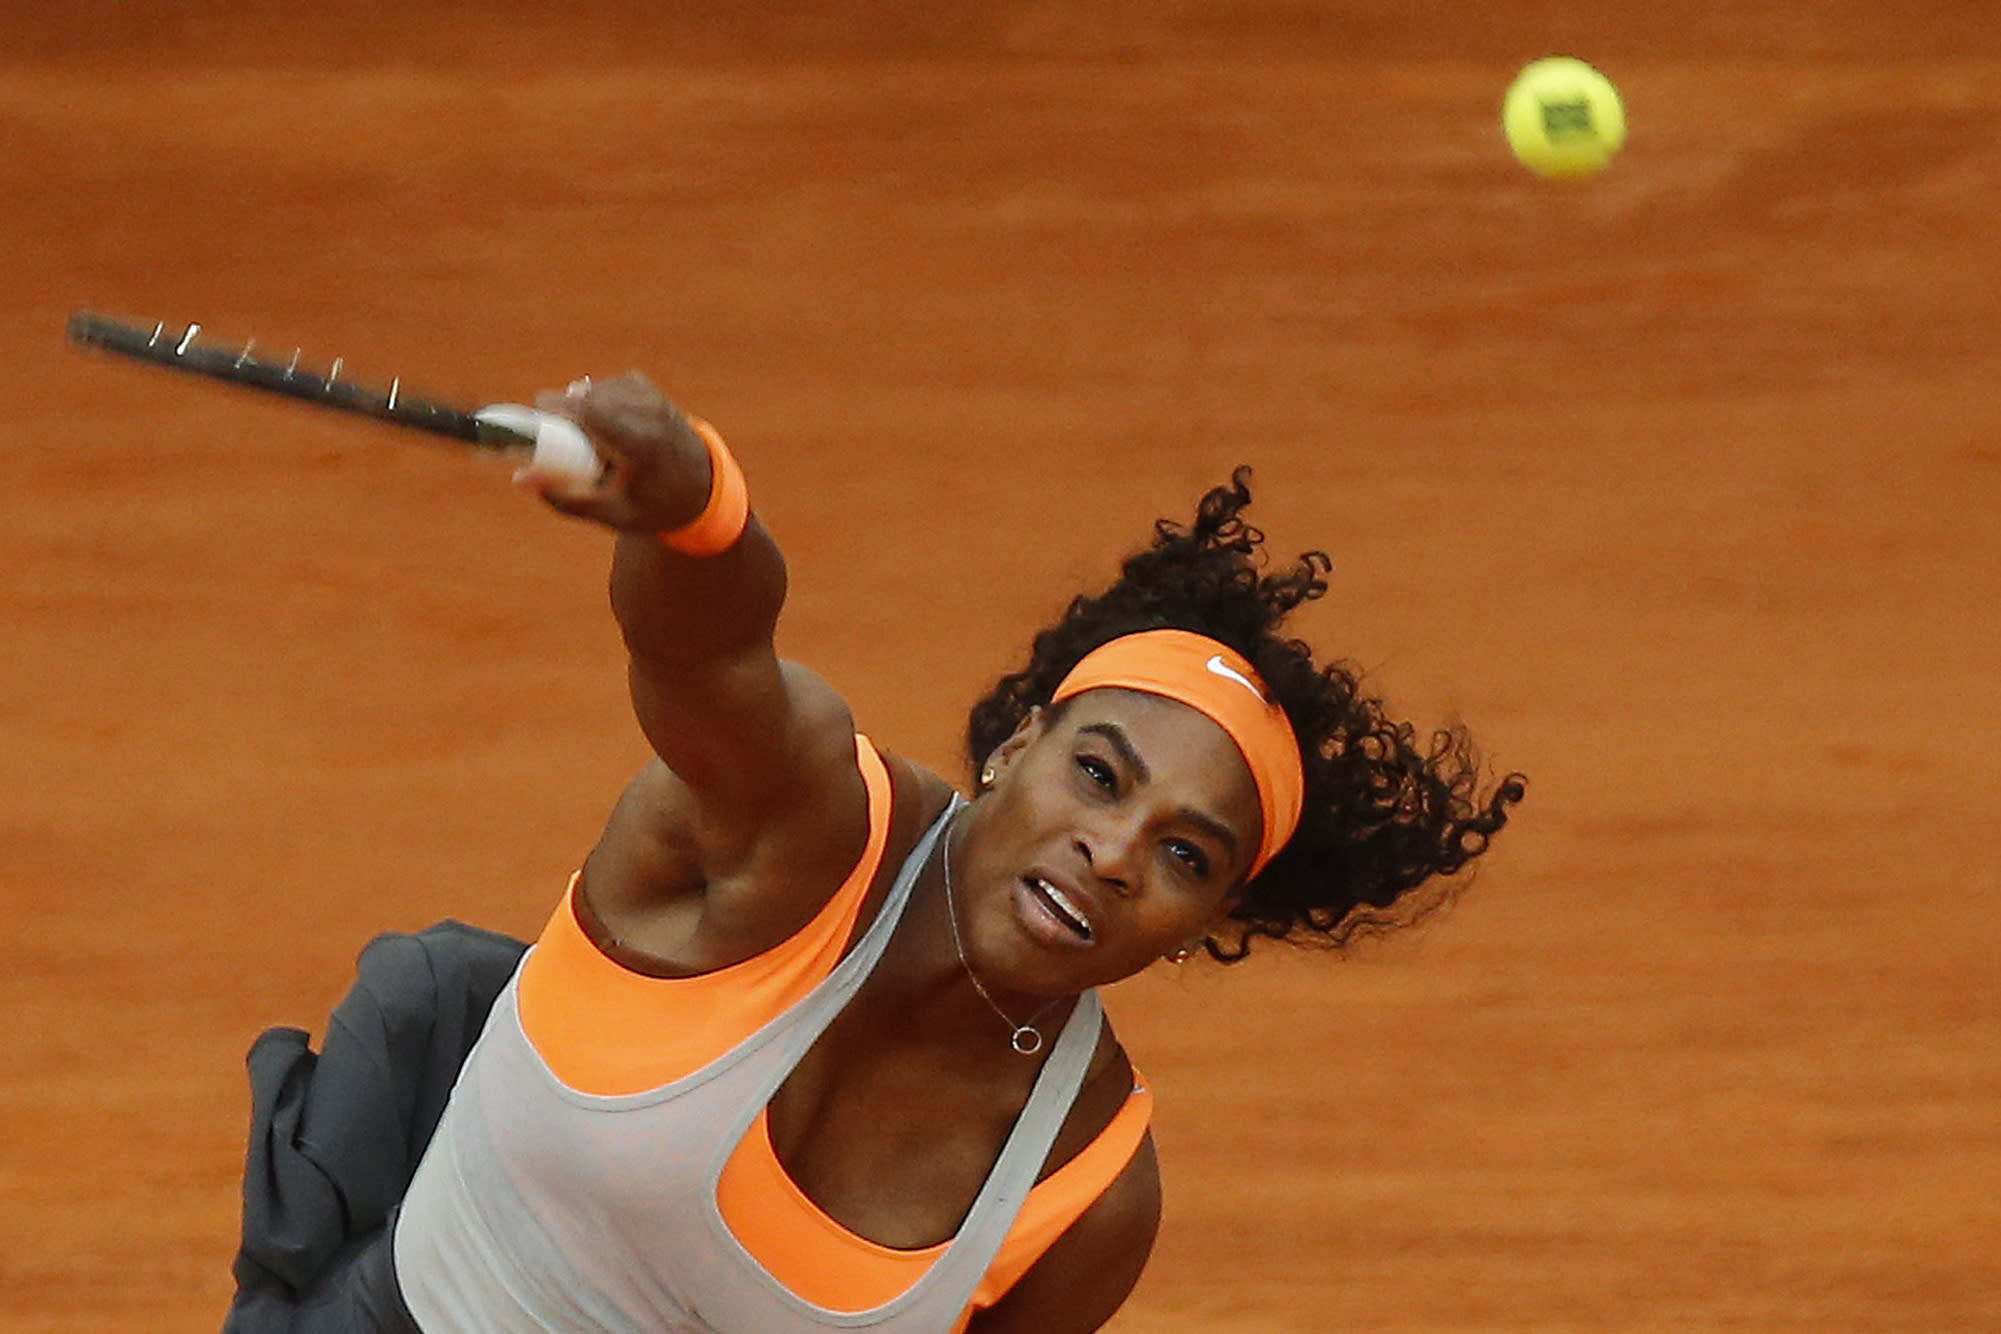 Williams beats Stephens, advances to Madrid Open 3rd round